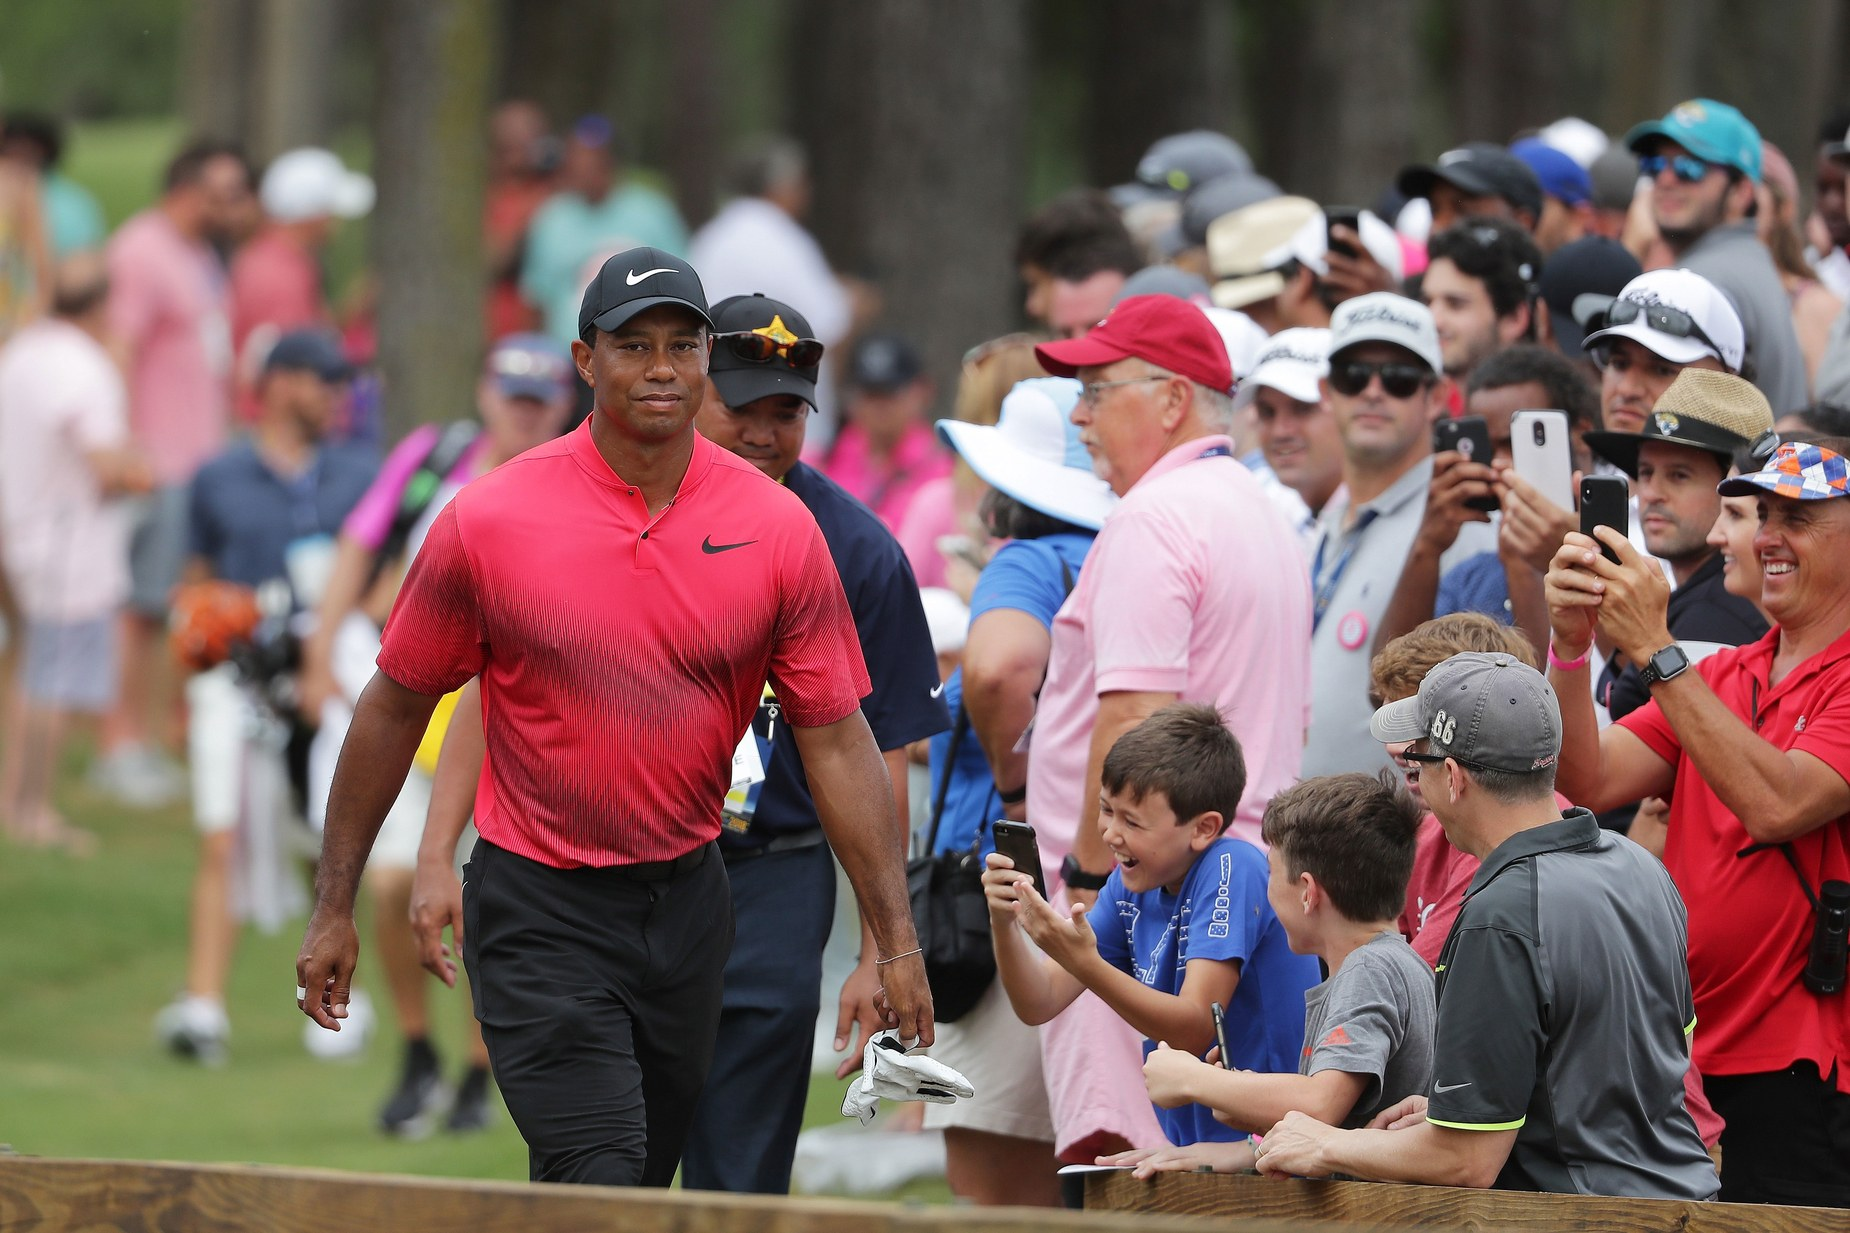 tiger-woods-players-2018-sunday-walking-by-crowd